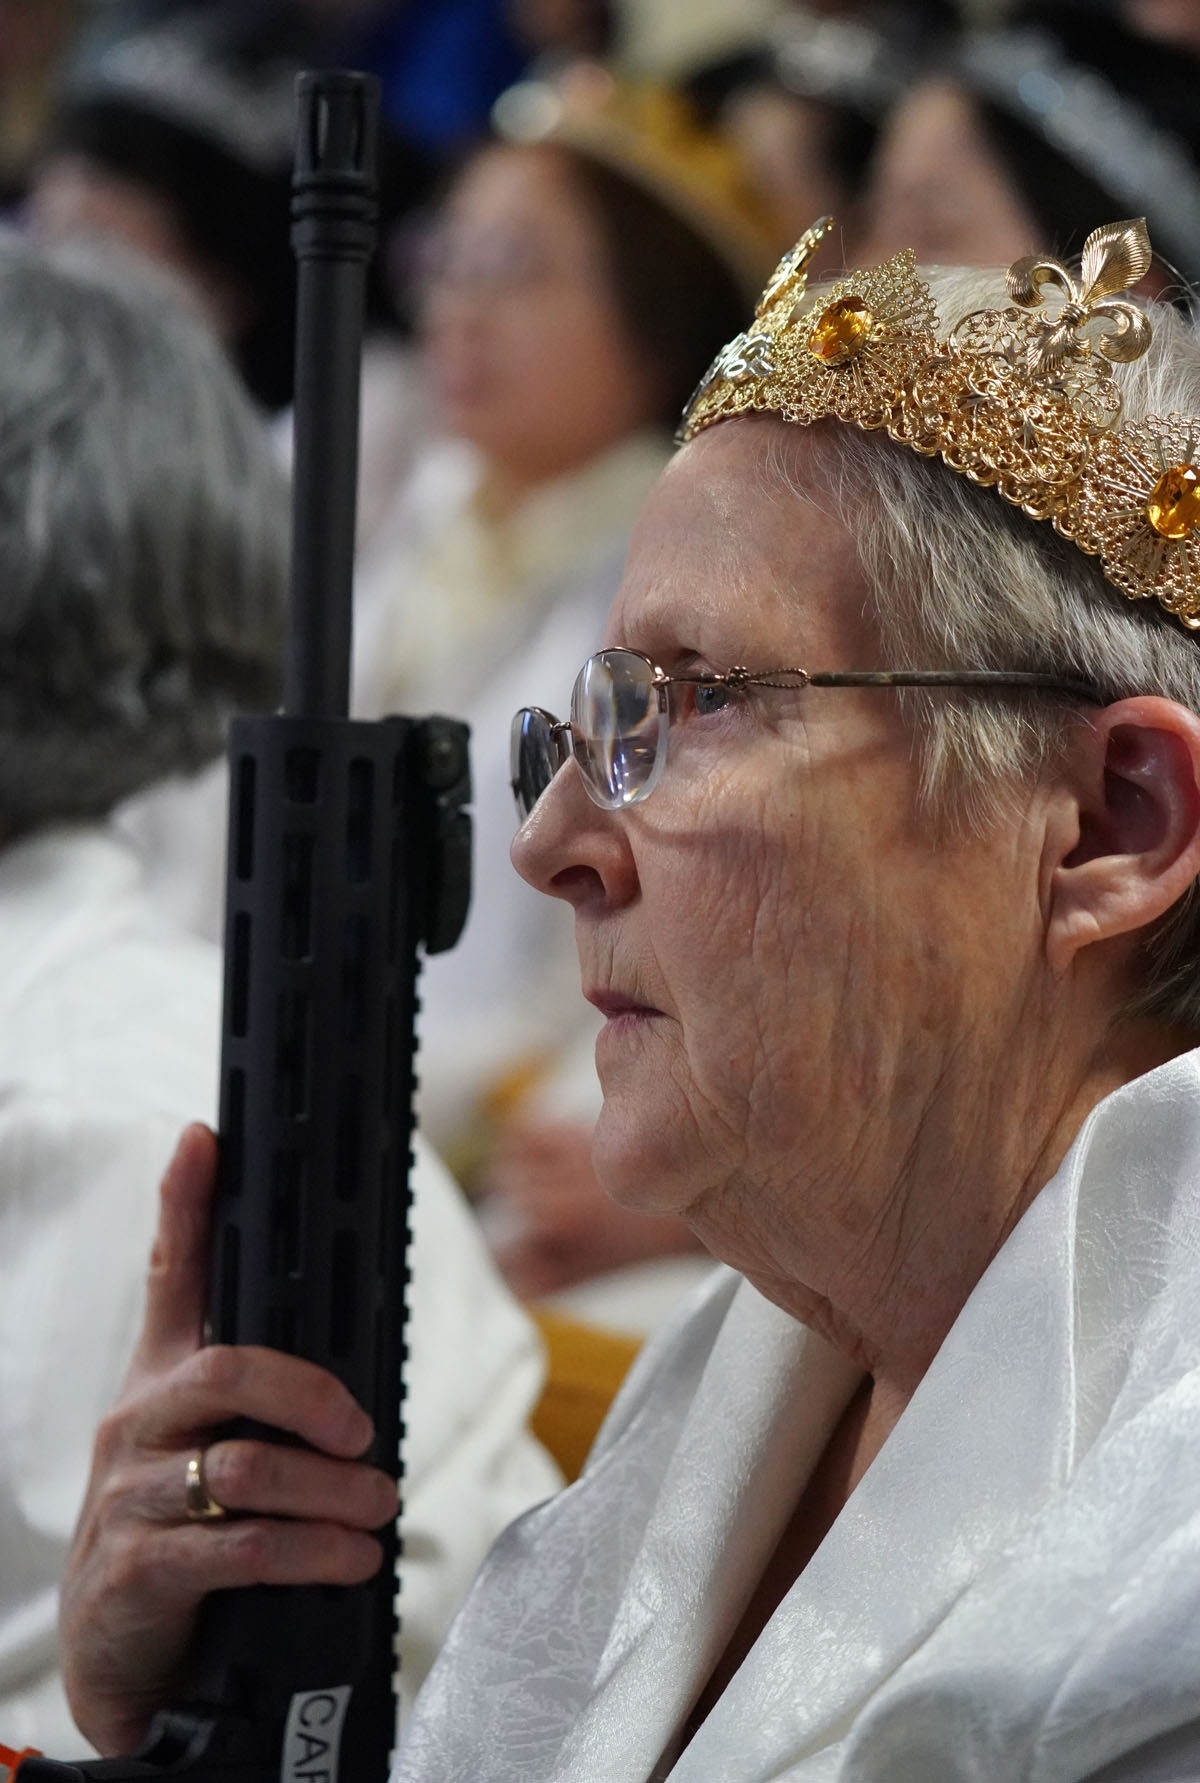 Worshippers at World Peace and Unification Sanctuary hold weapons during their service February 28, 2018 in Newfoundland, Pennsylvania.